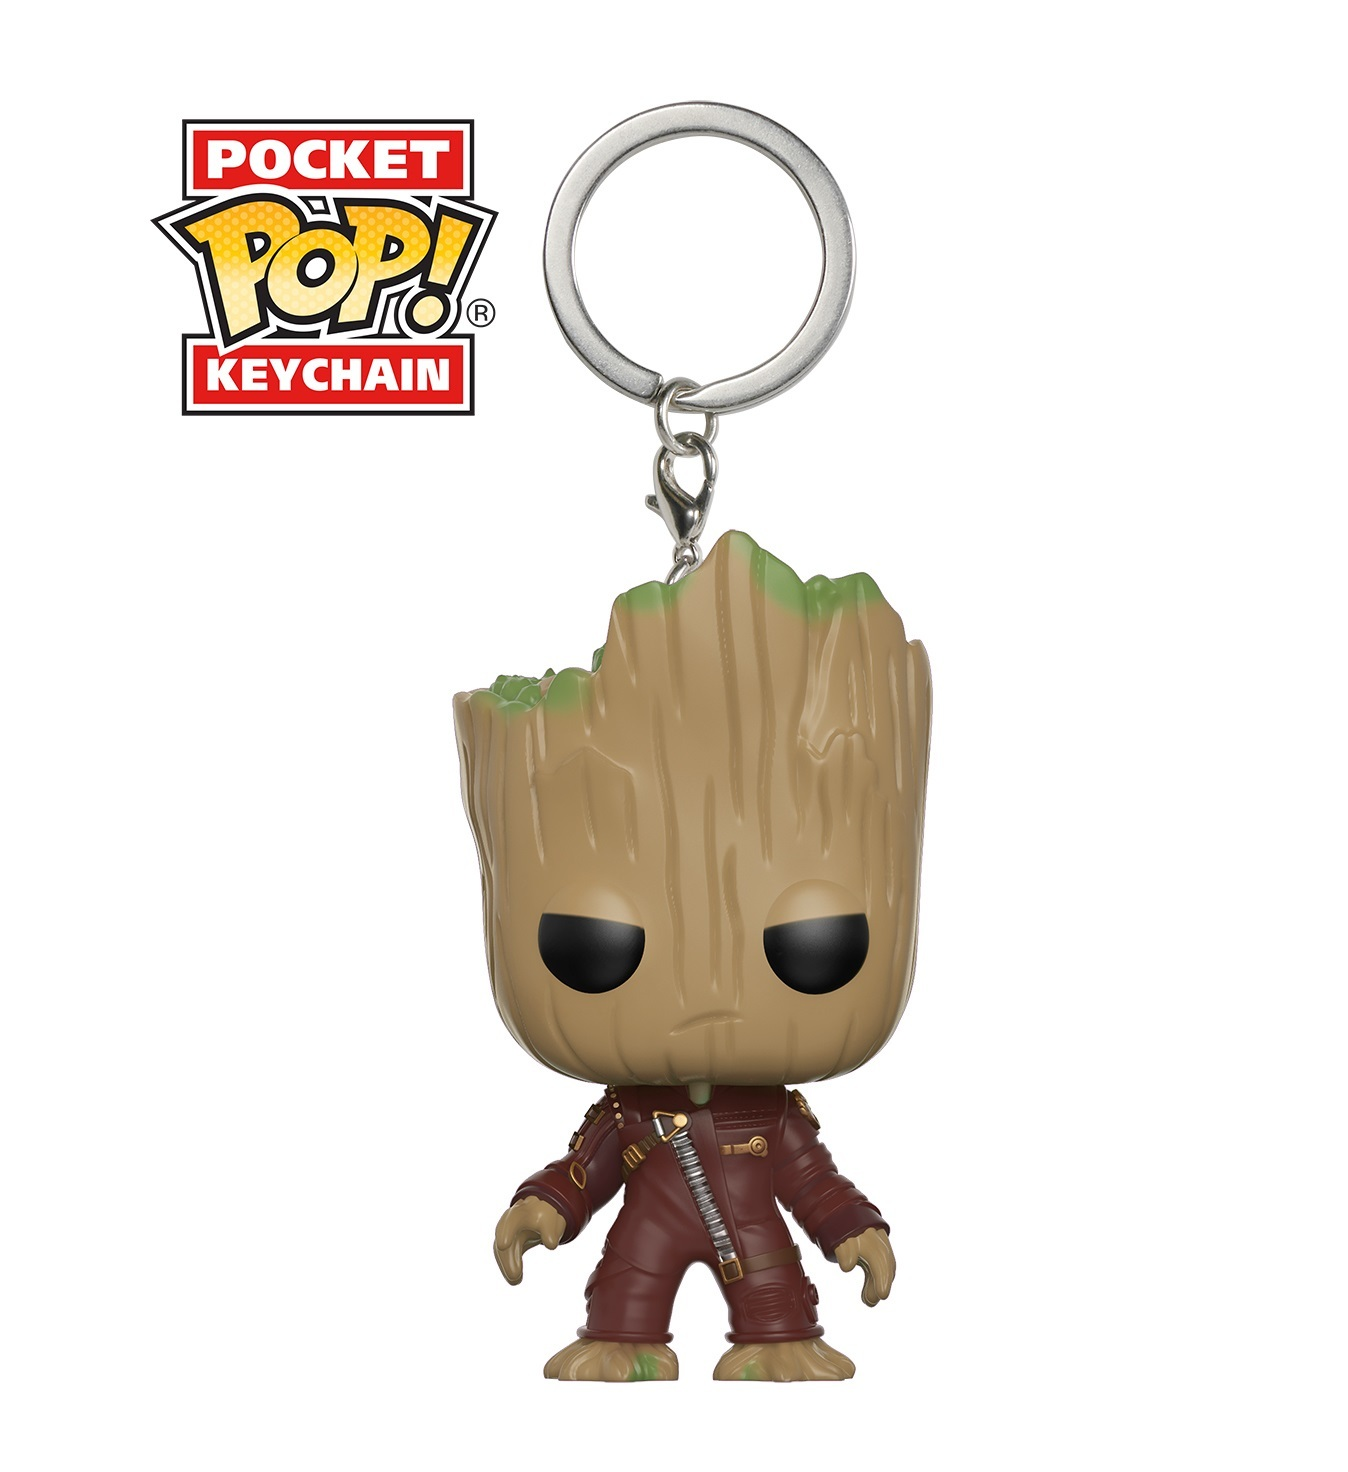 Guardians of the Galaxy: Vol. 2 - Groot Pocket Pop! Key Chain image